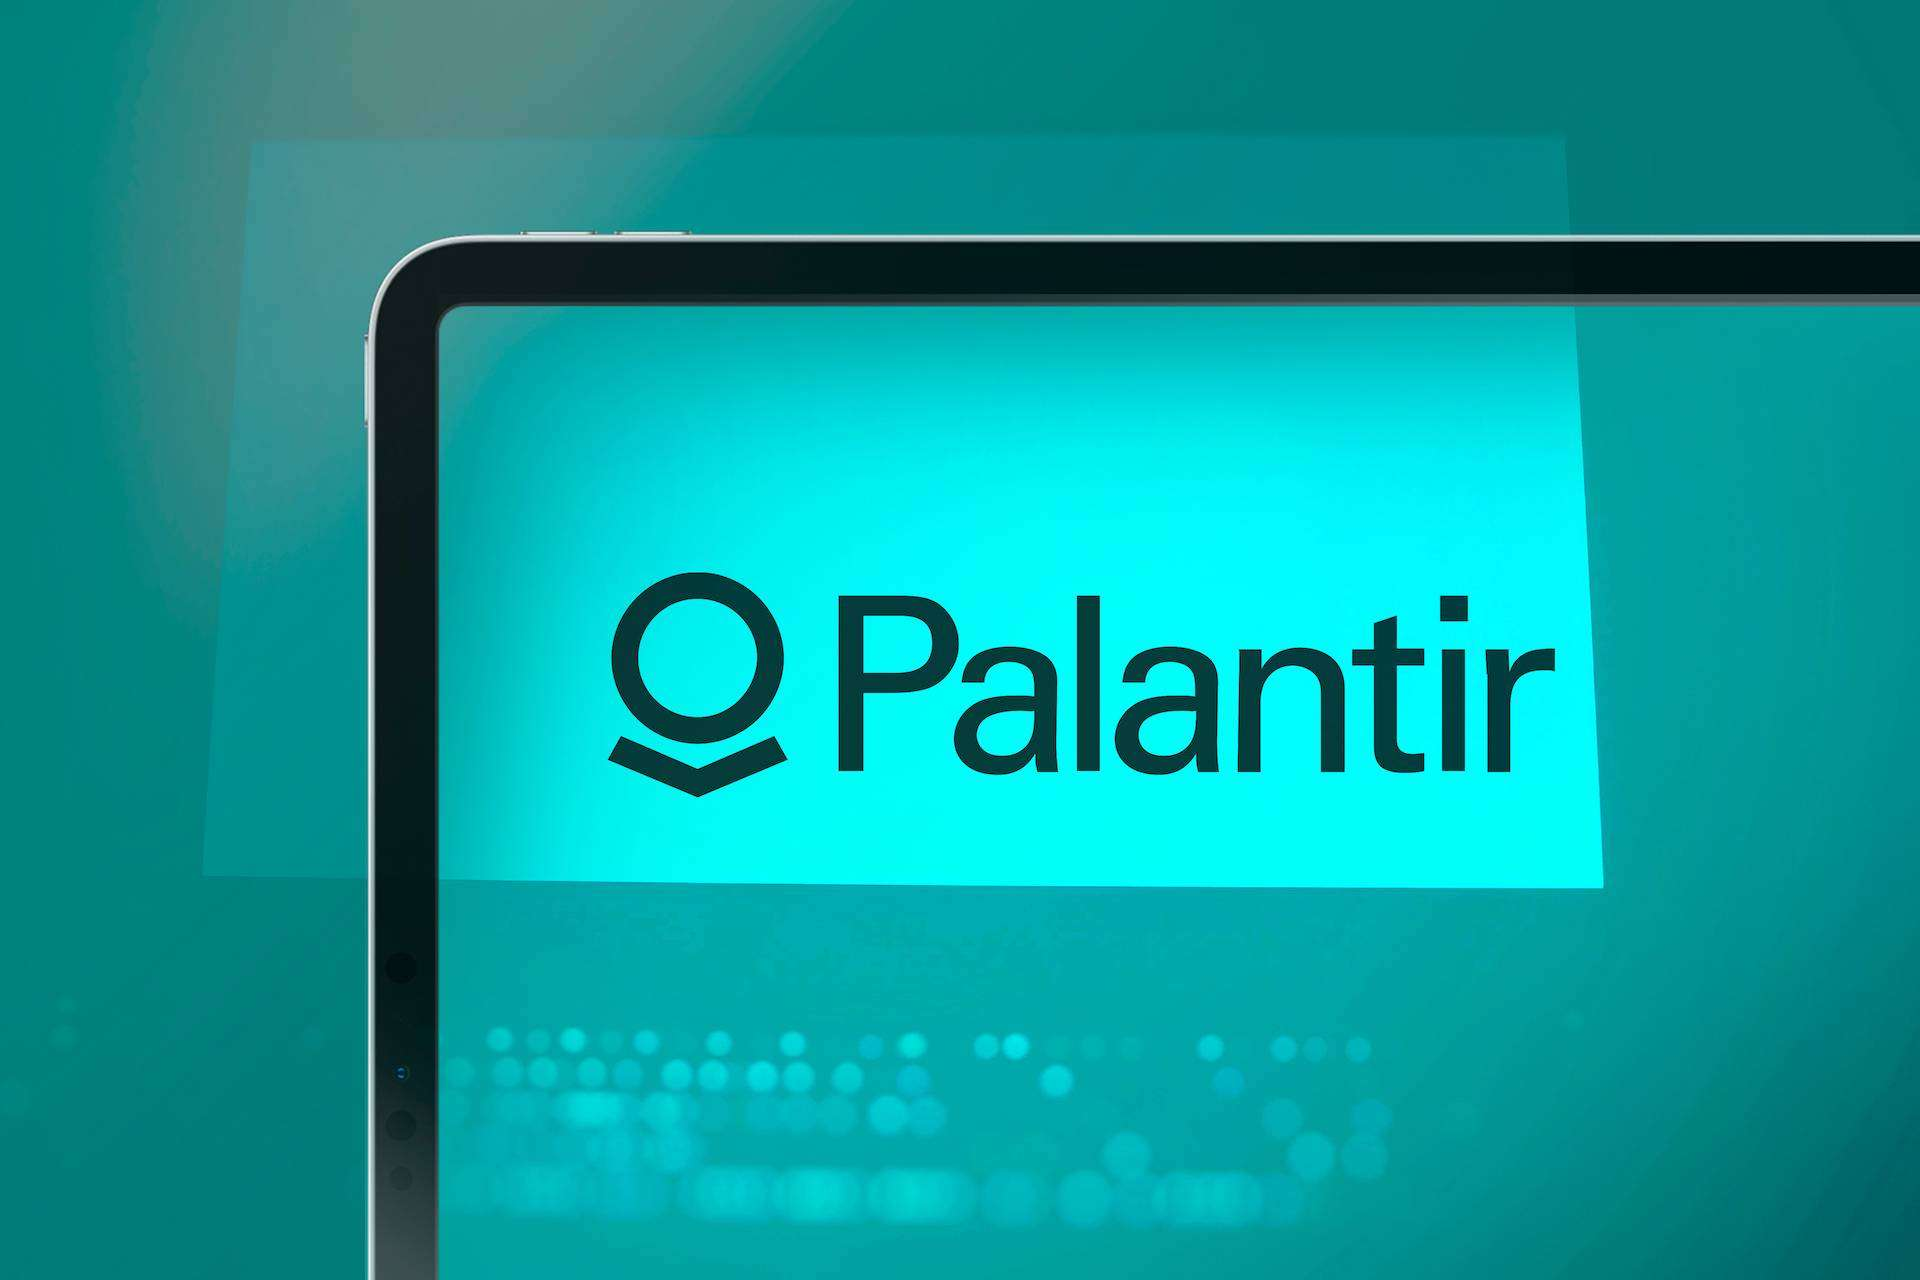 Here's 3 things to take away from Palantir's Q2 earnings